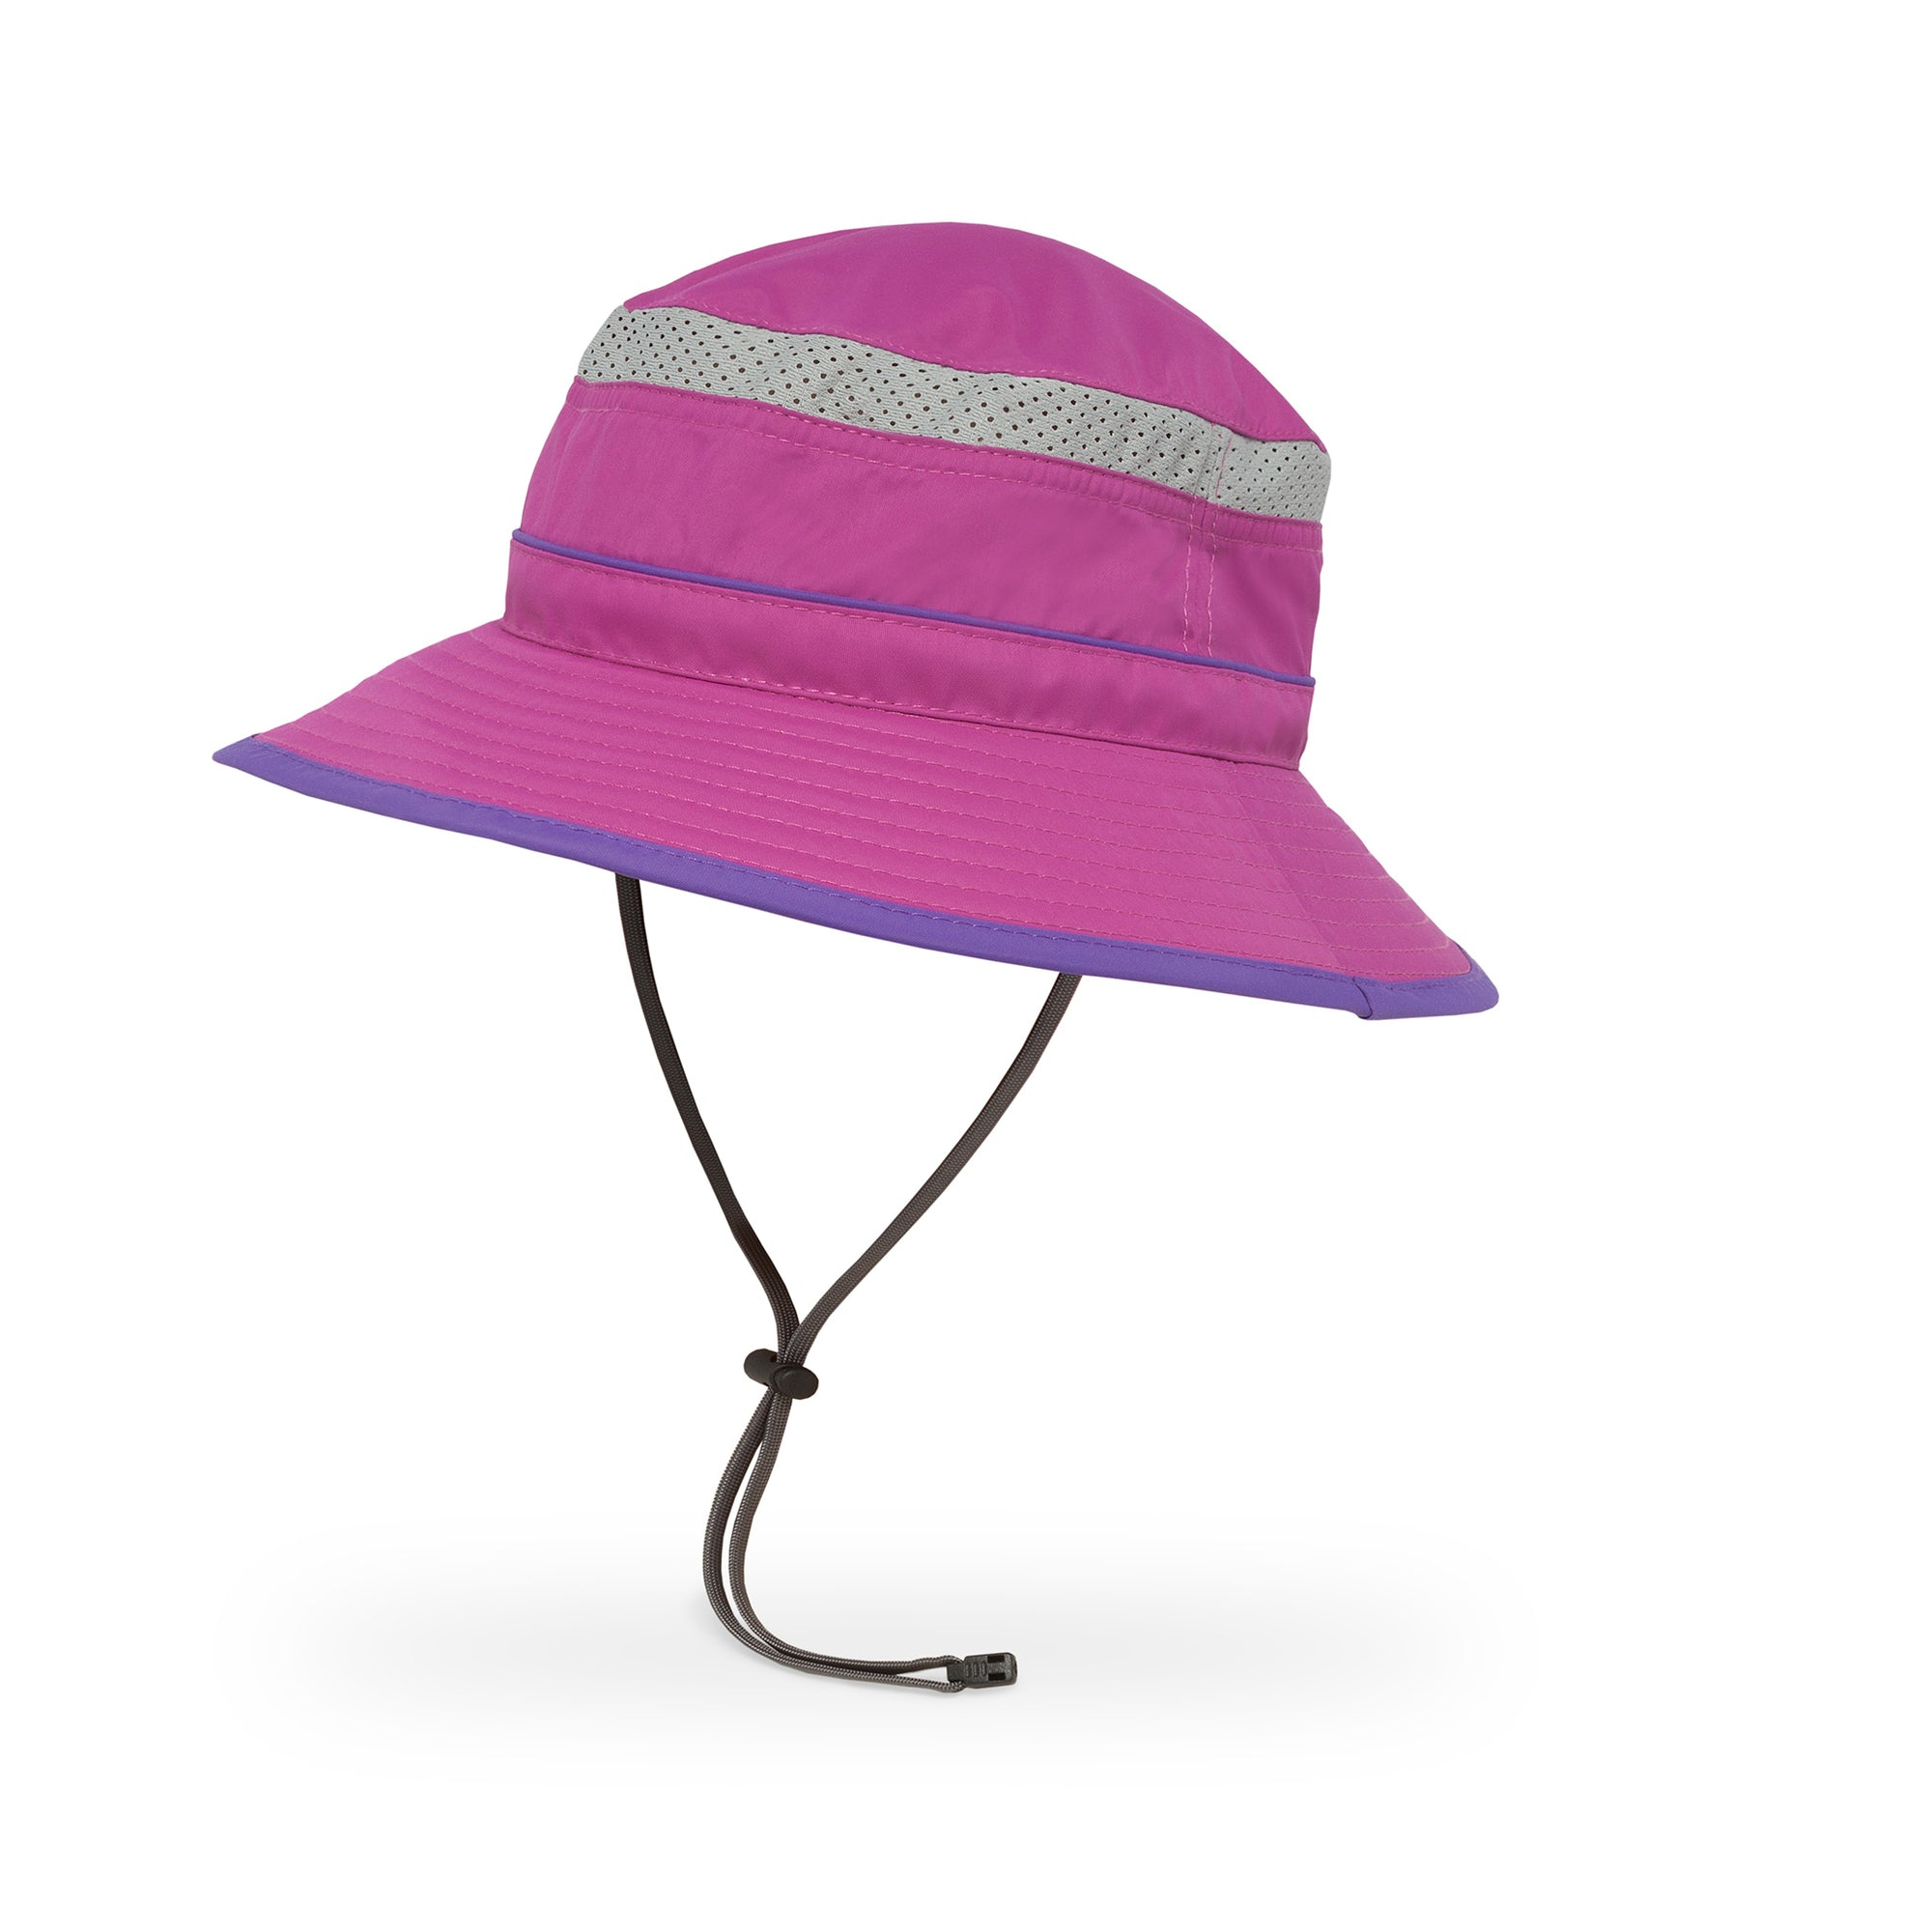 photo of sunday afternoons kids' fun bucket hat in blossom